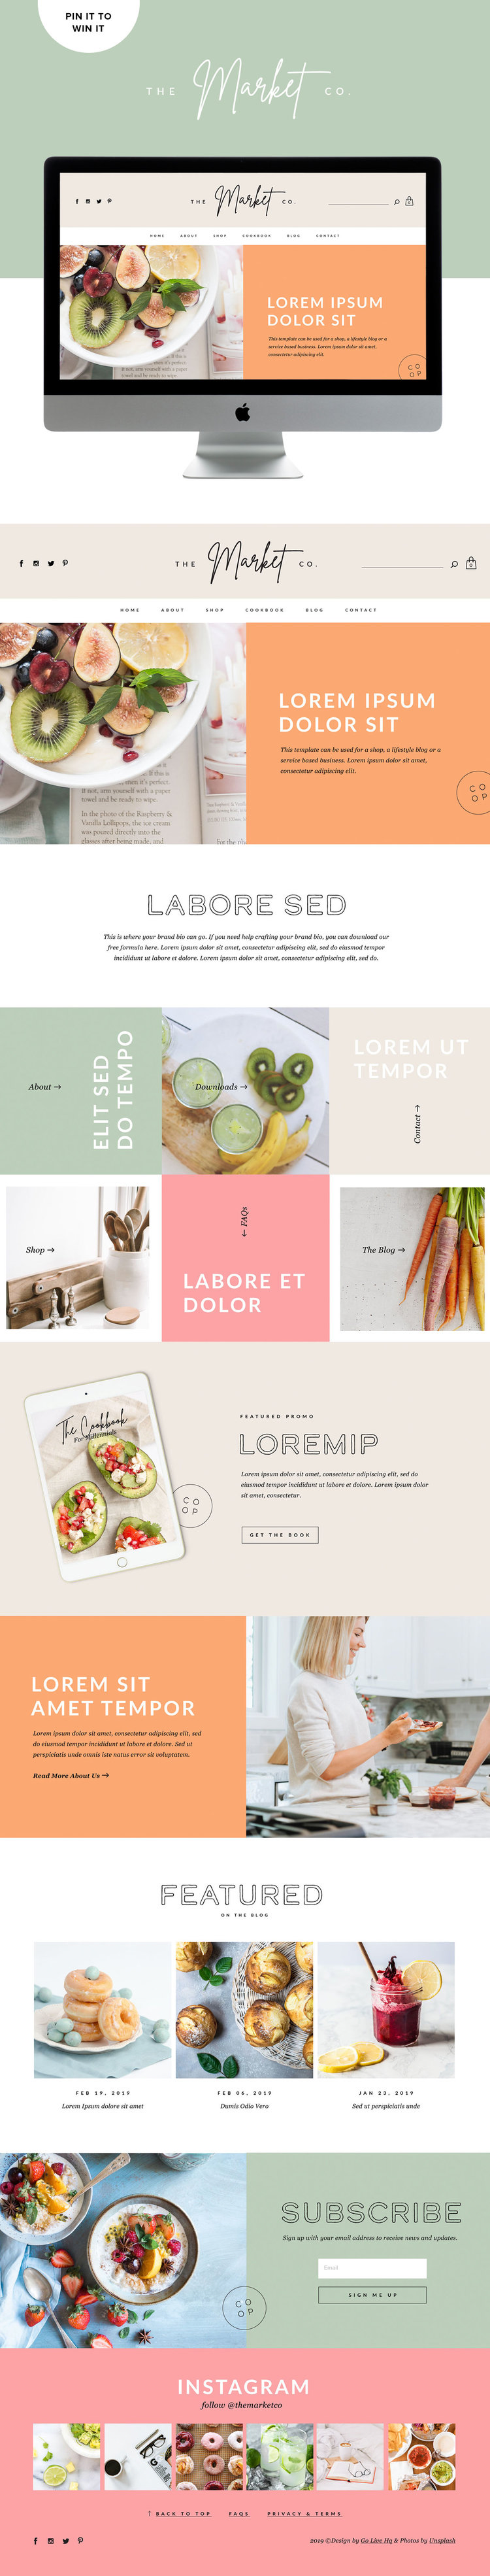 Colorful,+Bright+and+Fun+Squarespace+Website+Template+Design+For+Squarespace+_+By+GoLive.jpg